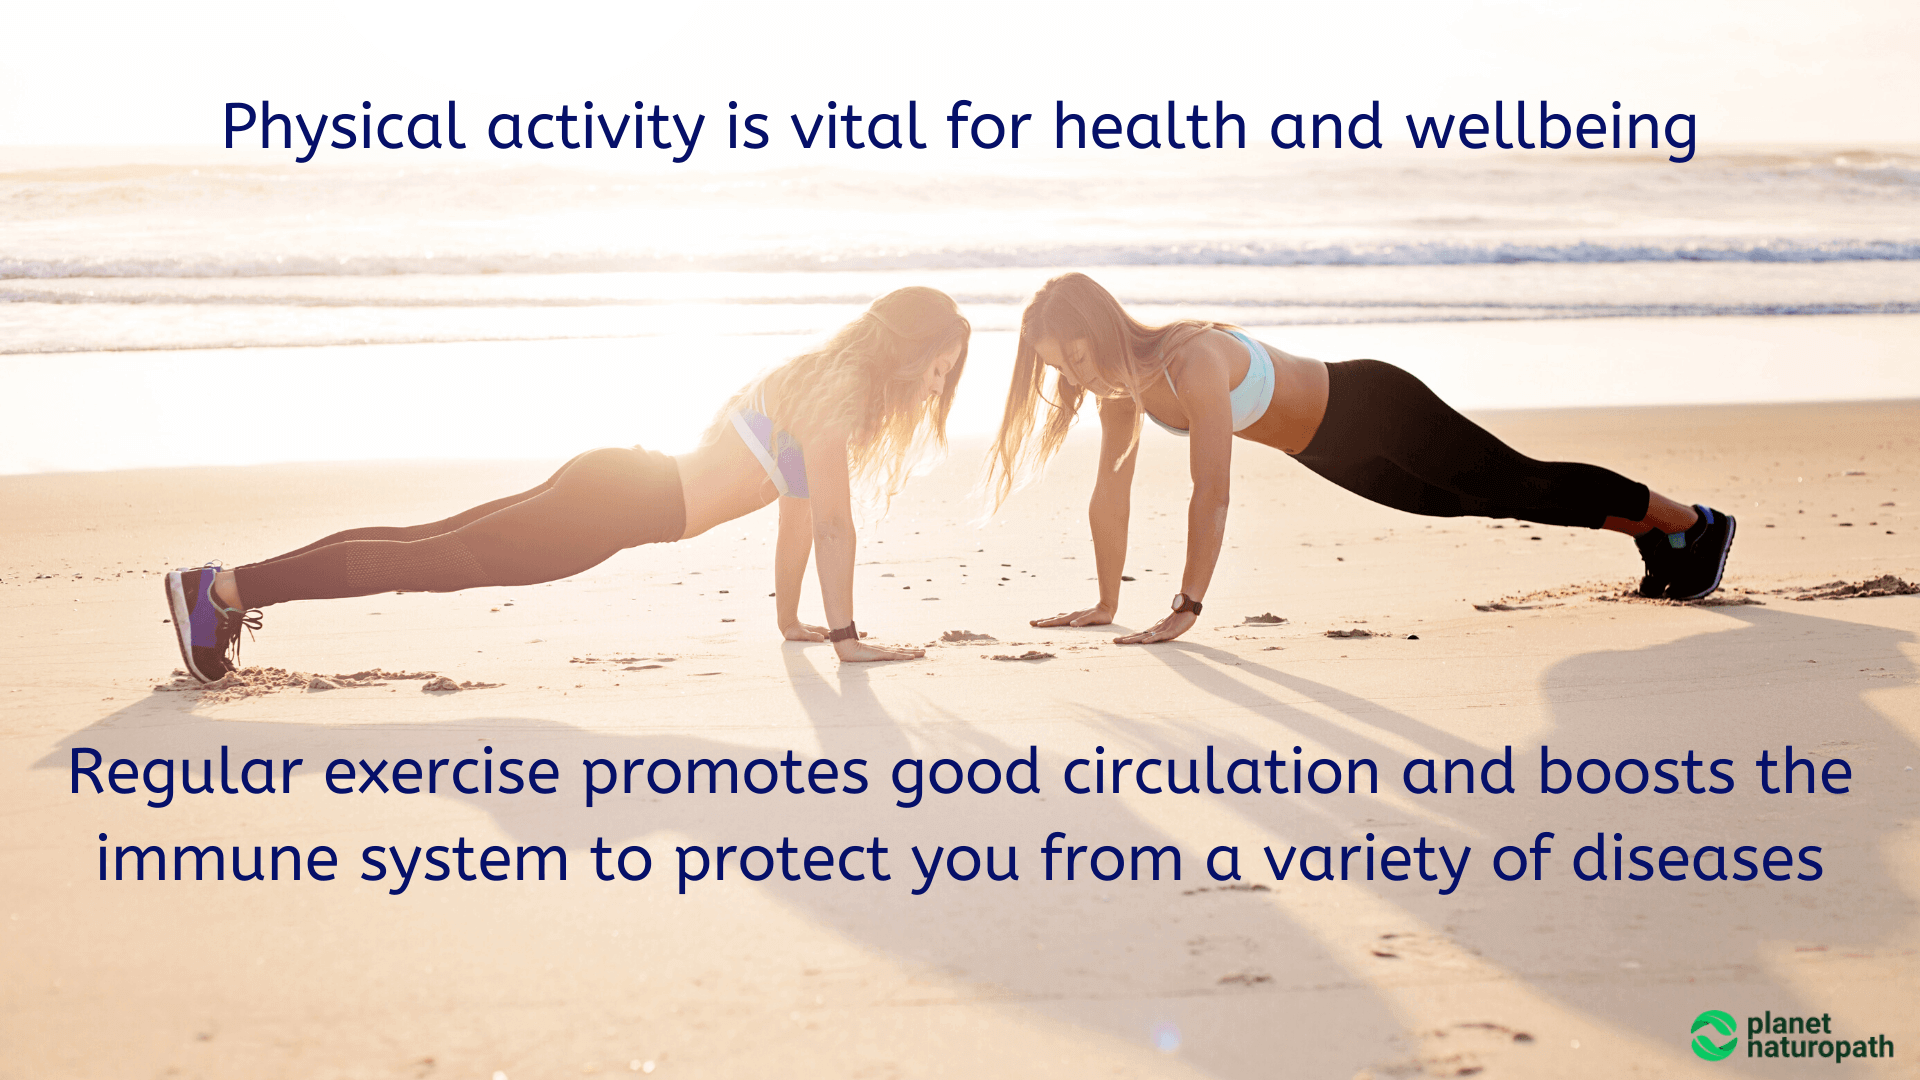 Regular-exercise-promotes-good-circulation-and-boosts-the-immune-system